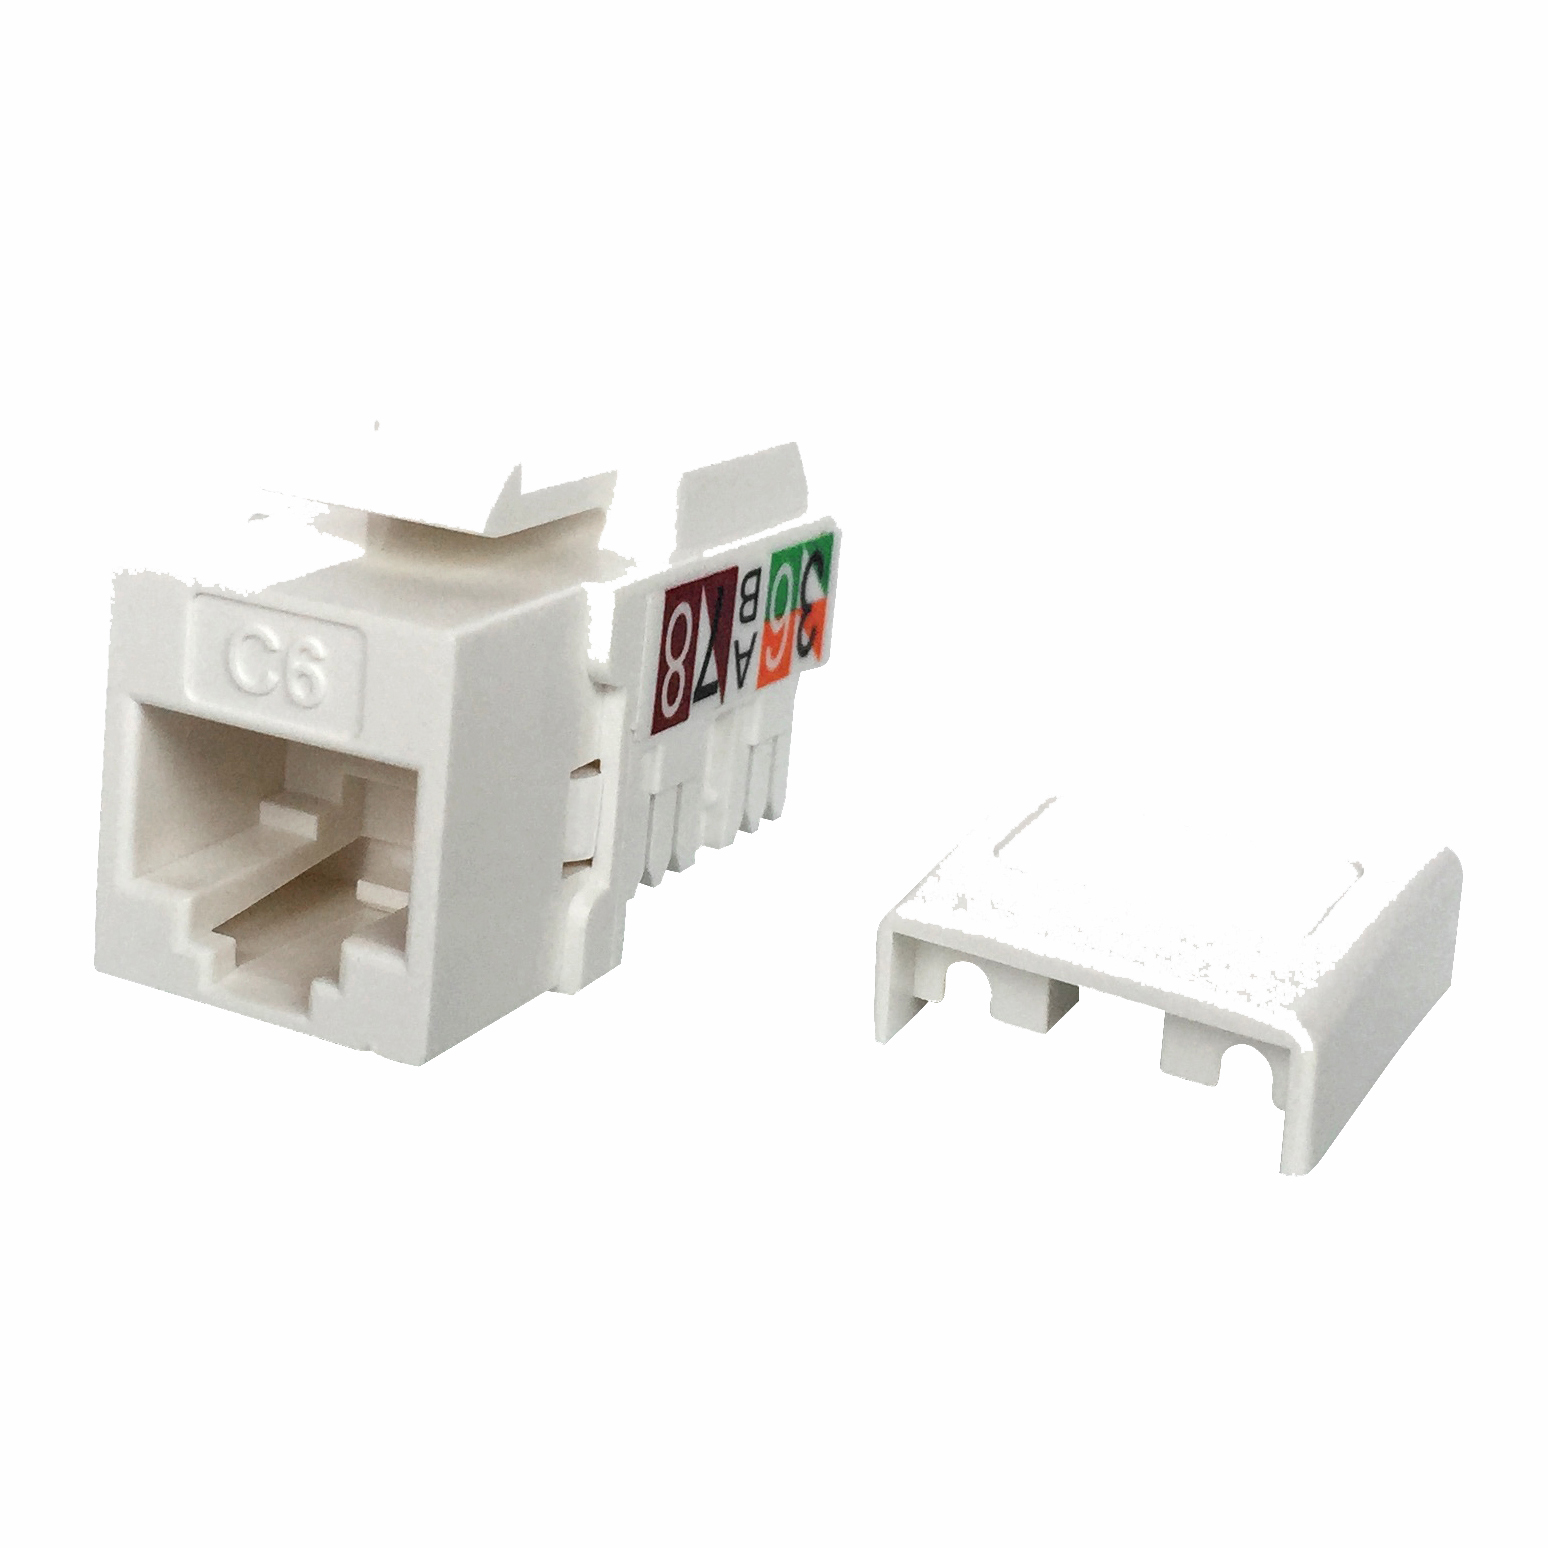 Cat6 Utp 90 110 Punch Down Keystone Jack Electrical Plugs And Rj45 Connector Cat 6 Modular Plug